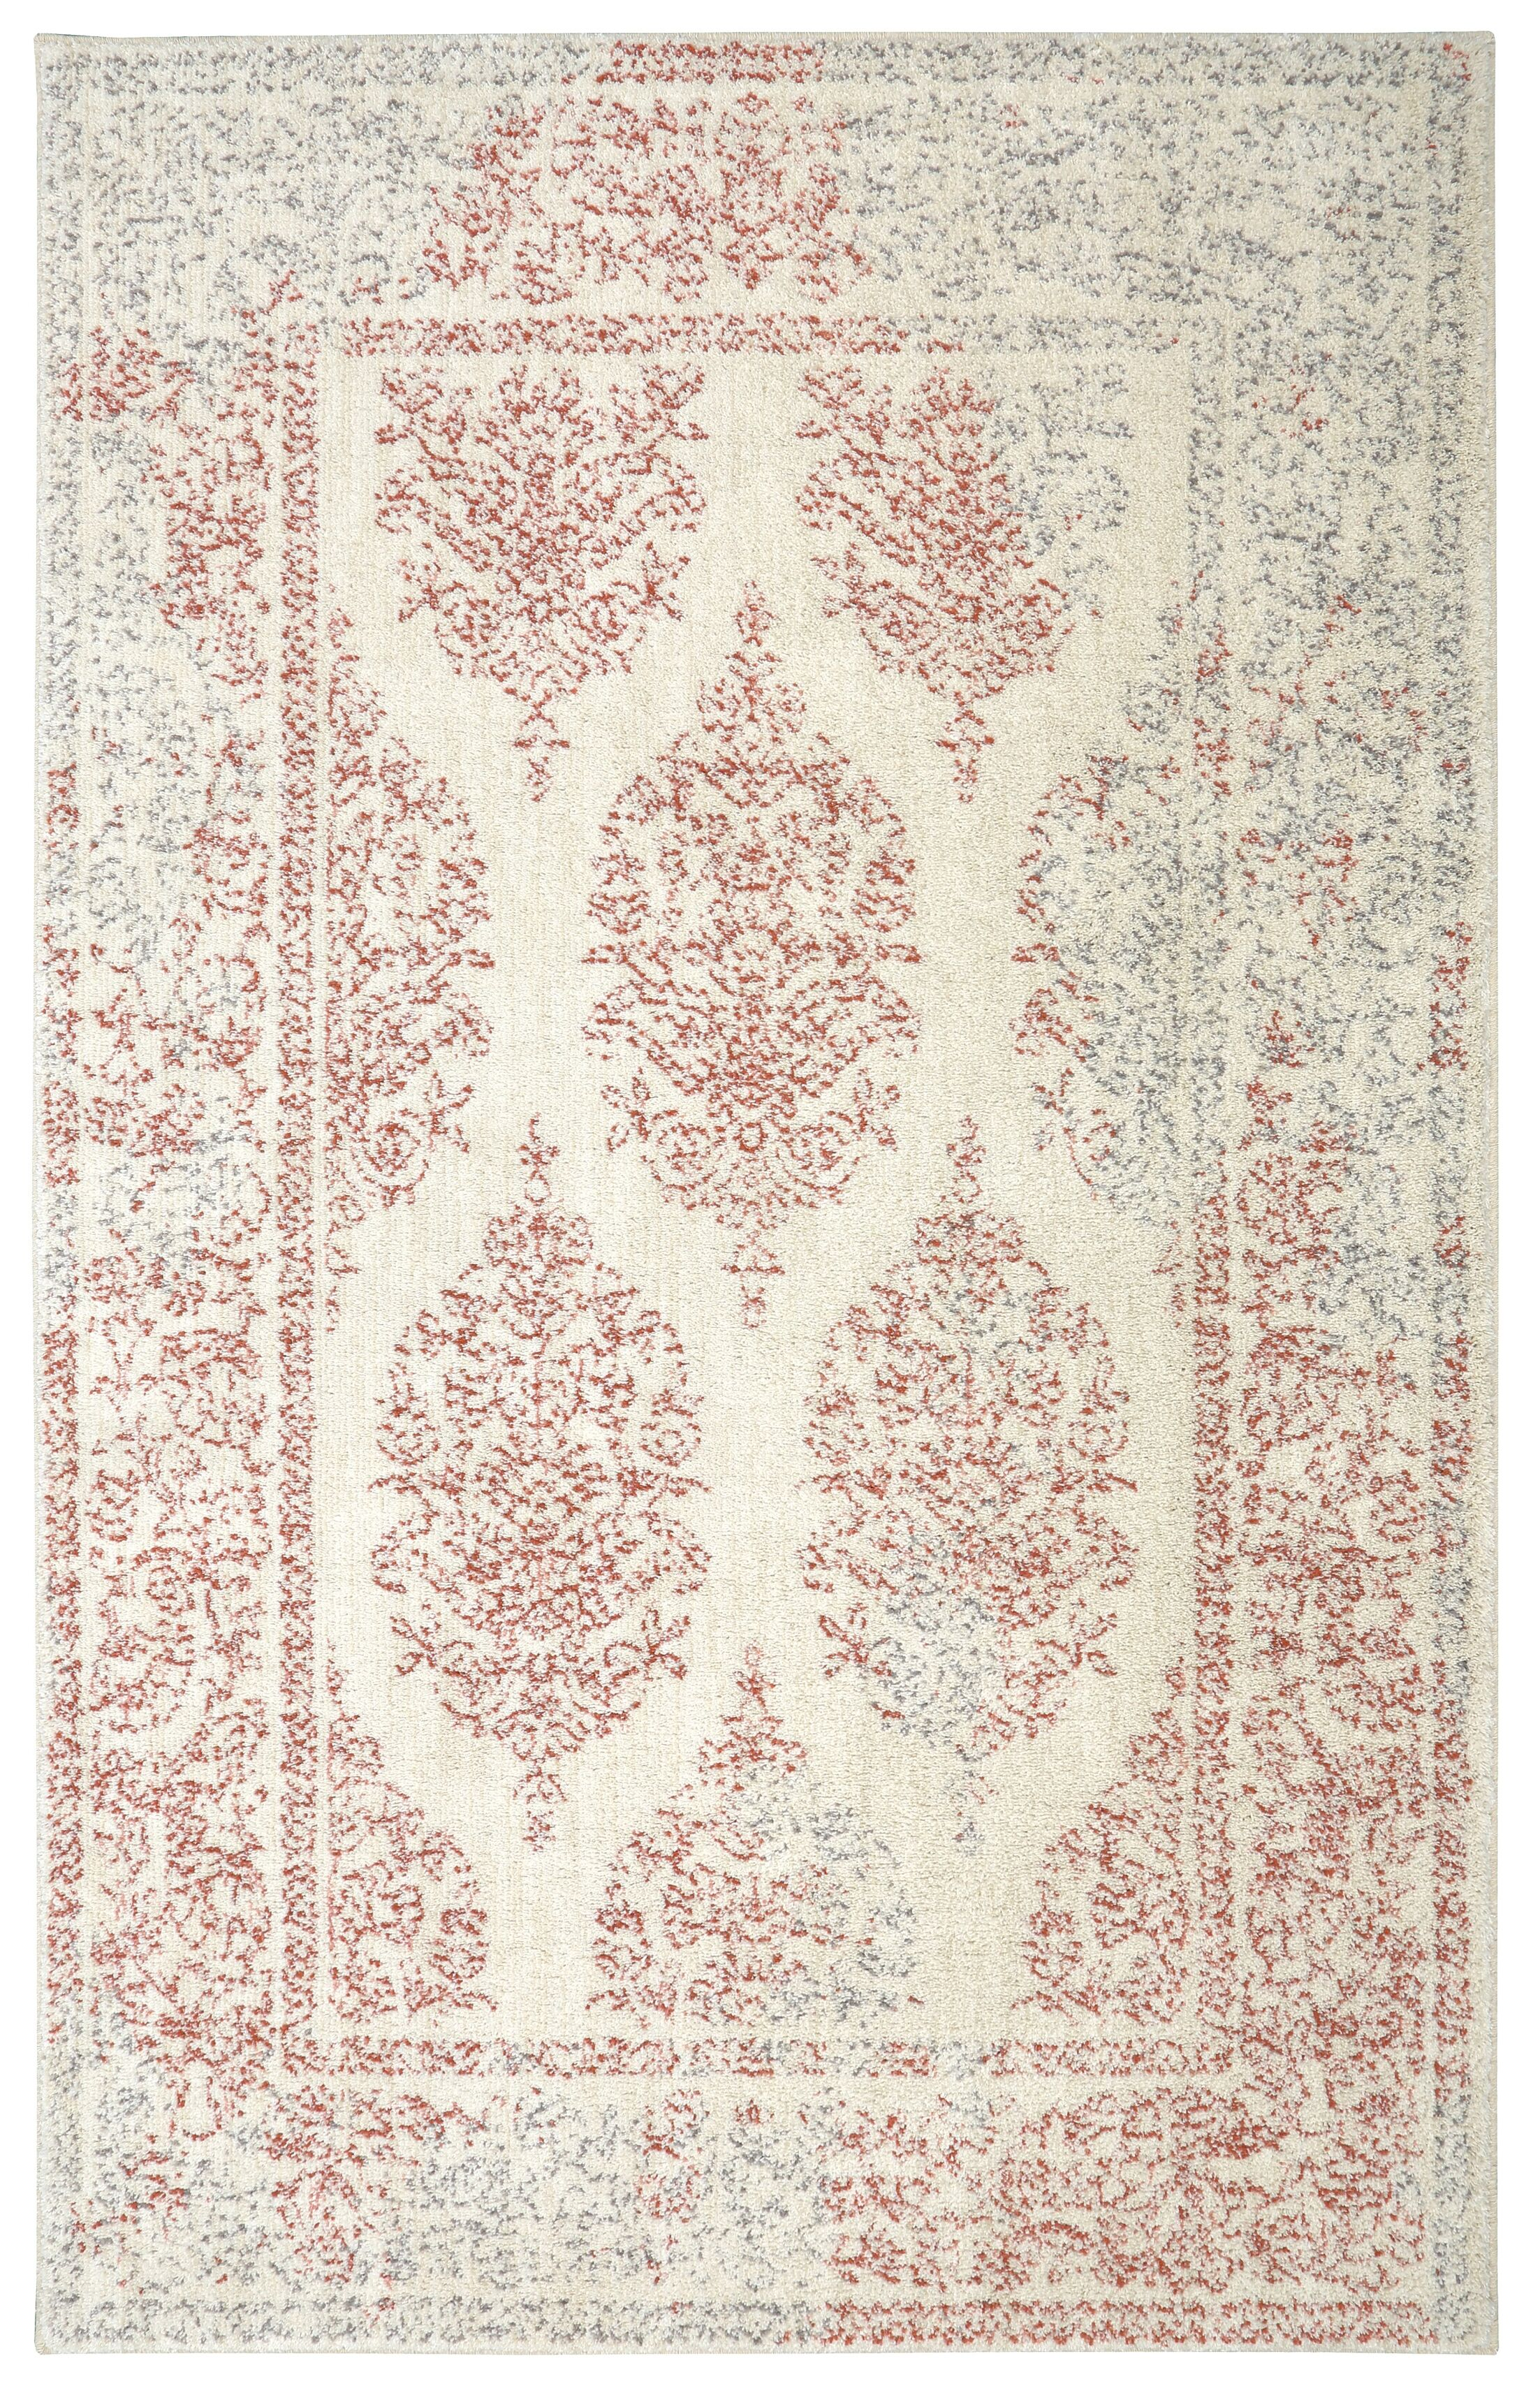 Rolla Coral/Beige Area Rug Rug Size: Rectangle 5' x 8'